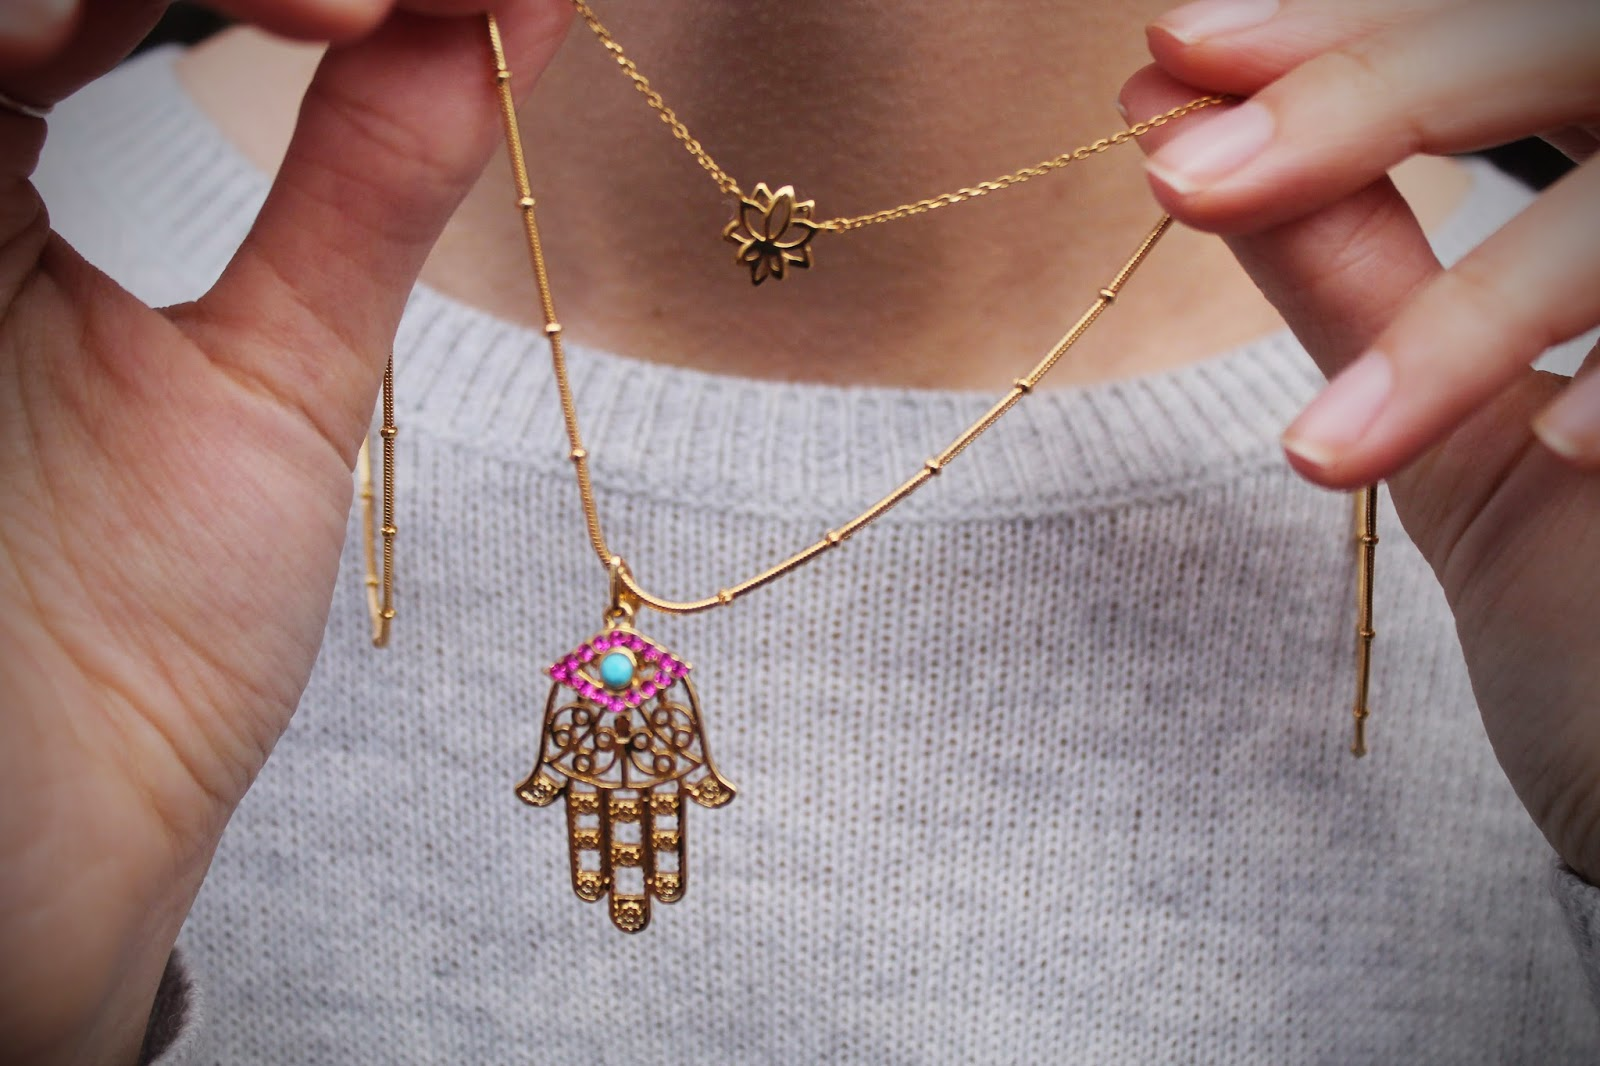 z for accessorize, zara simon, jewllery, dainty, stacking, layering, evil eye, hamsa hand, lotus flower